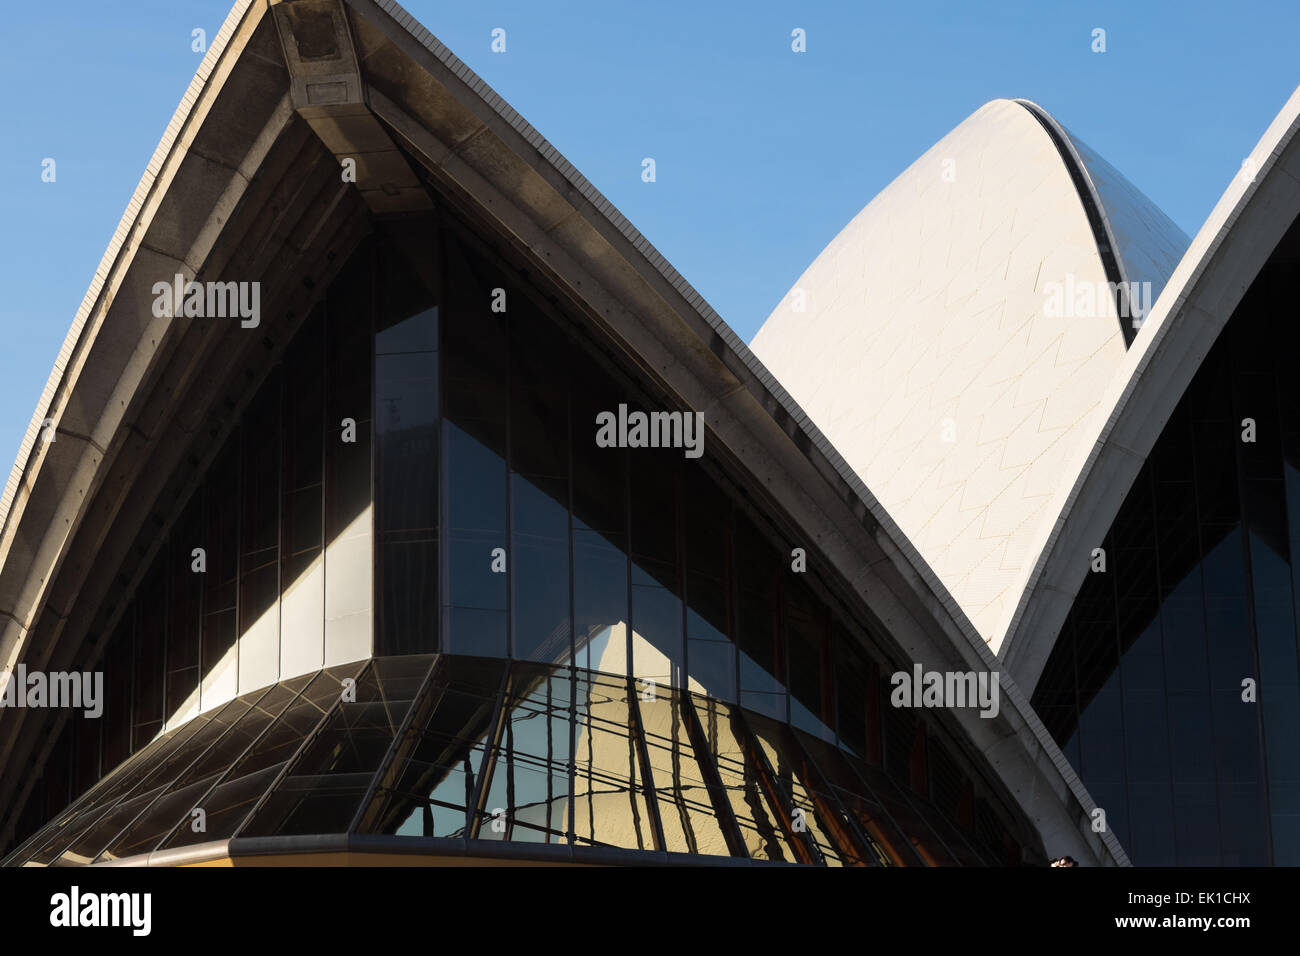 Detail photos of the Sydney Opera House, by architect Jørn Utzon. - Stock Image